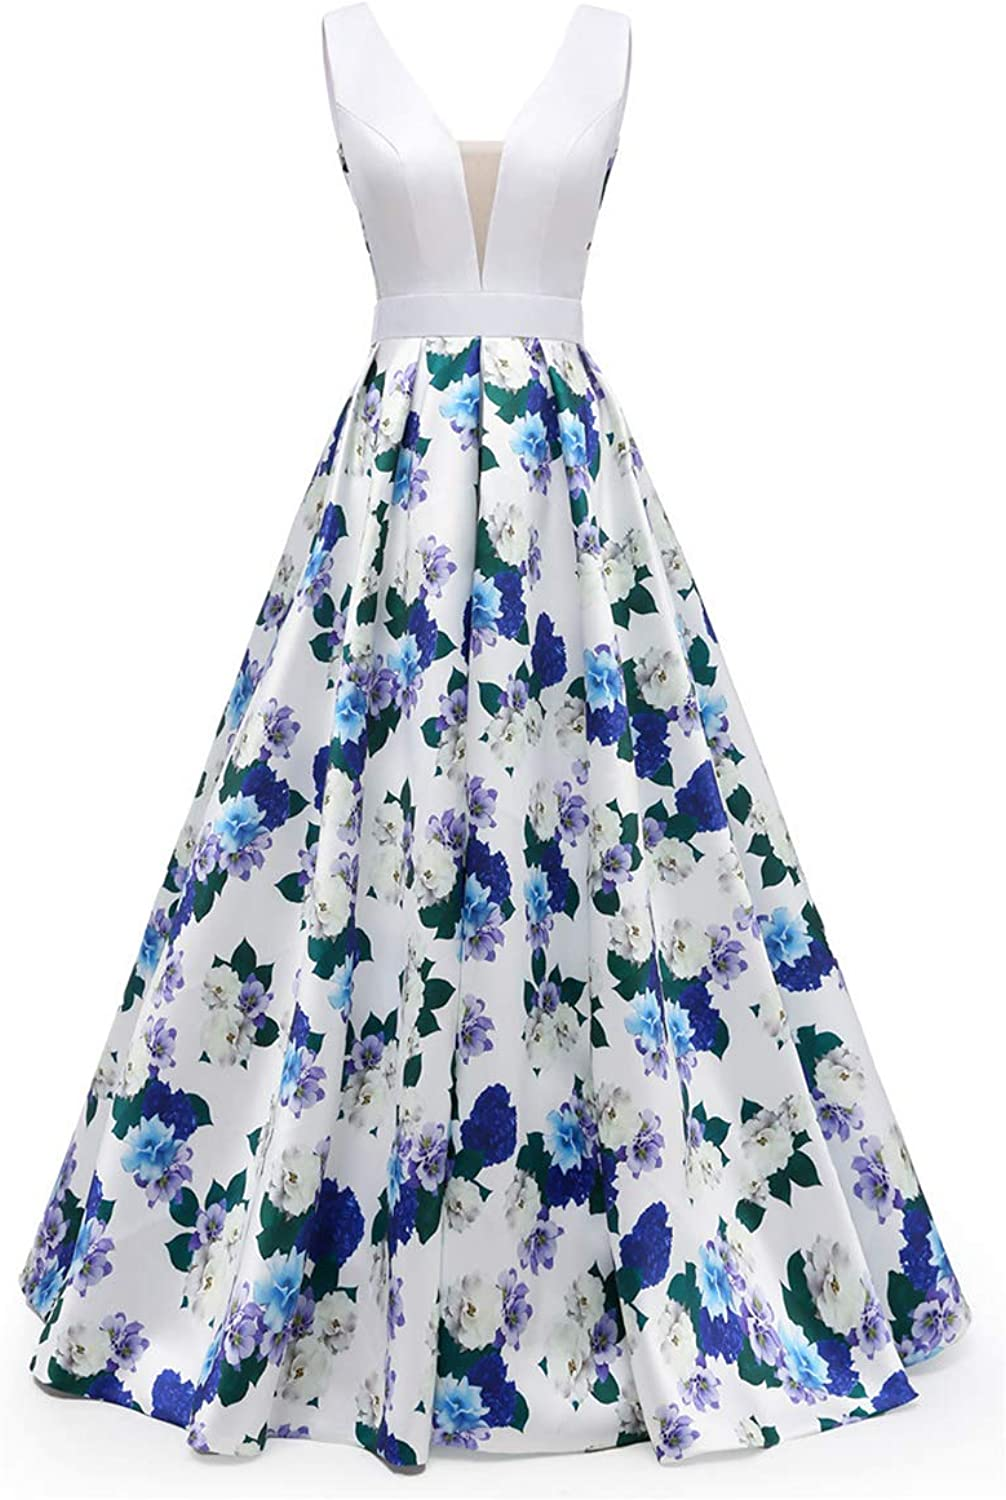 FWVR Floral Print Evening Dresses for Women Formal Long Prom Wedding Party Gowns